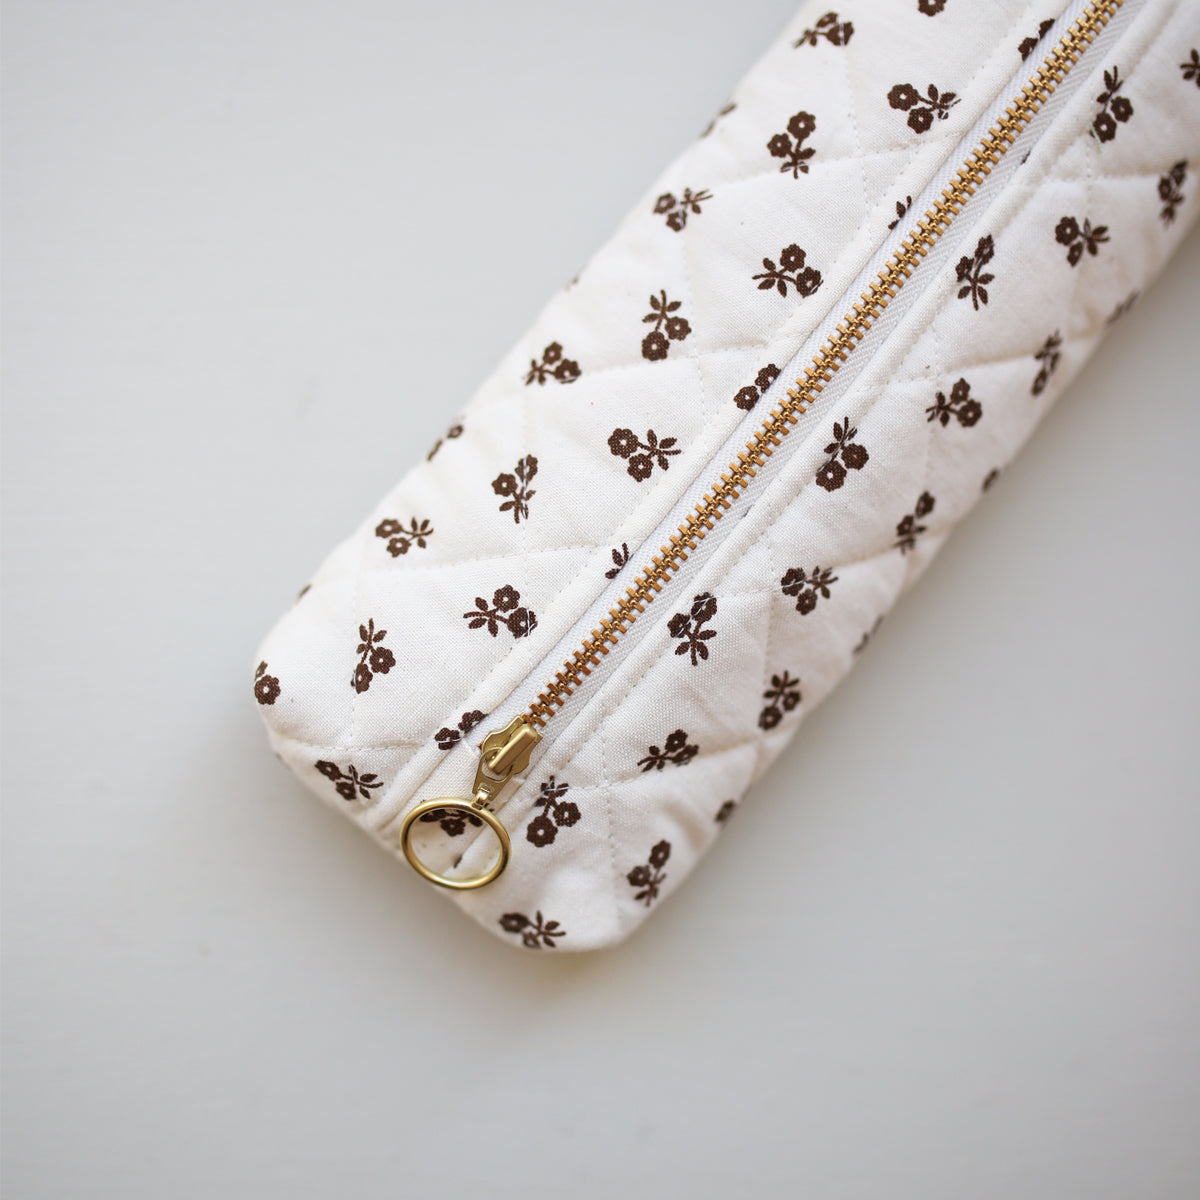 PEN CASE // BROWN FLOWERS